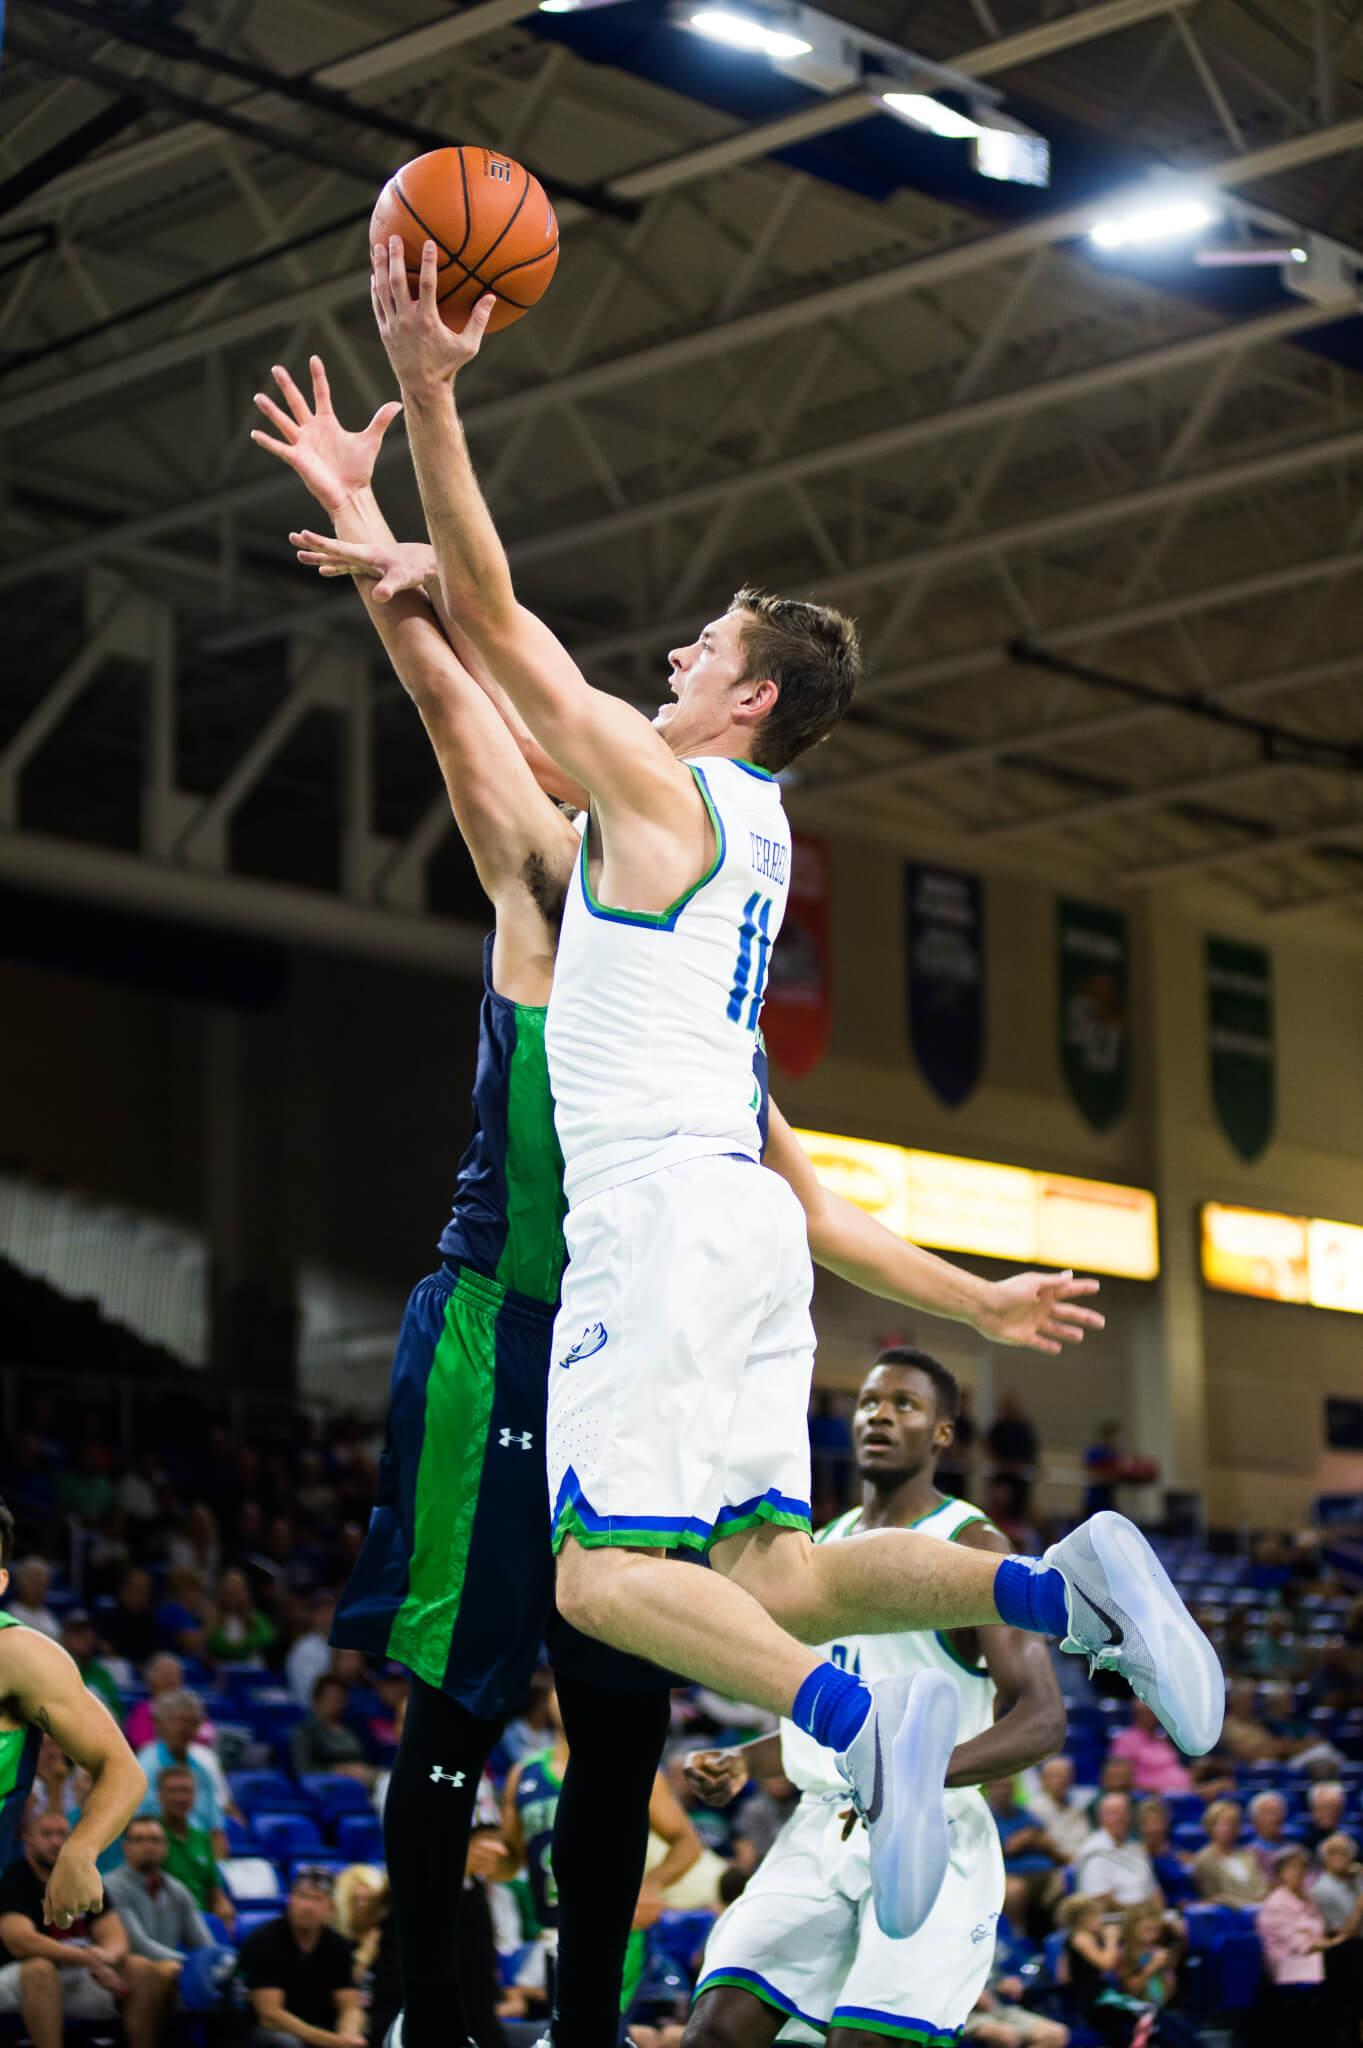 FGCU men's basketball routes Ave Maria for third straight victory